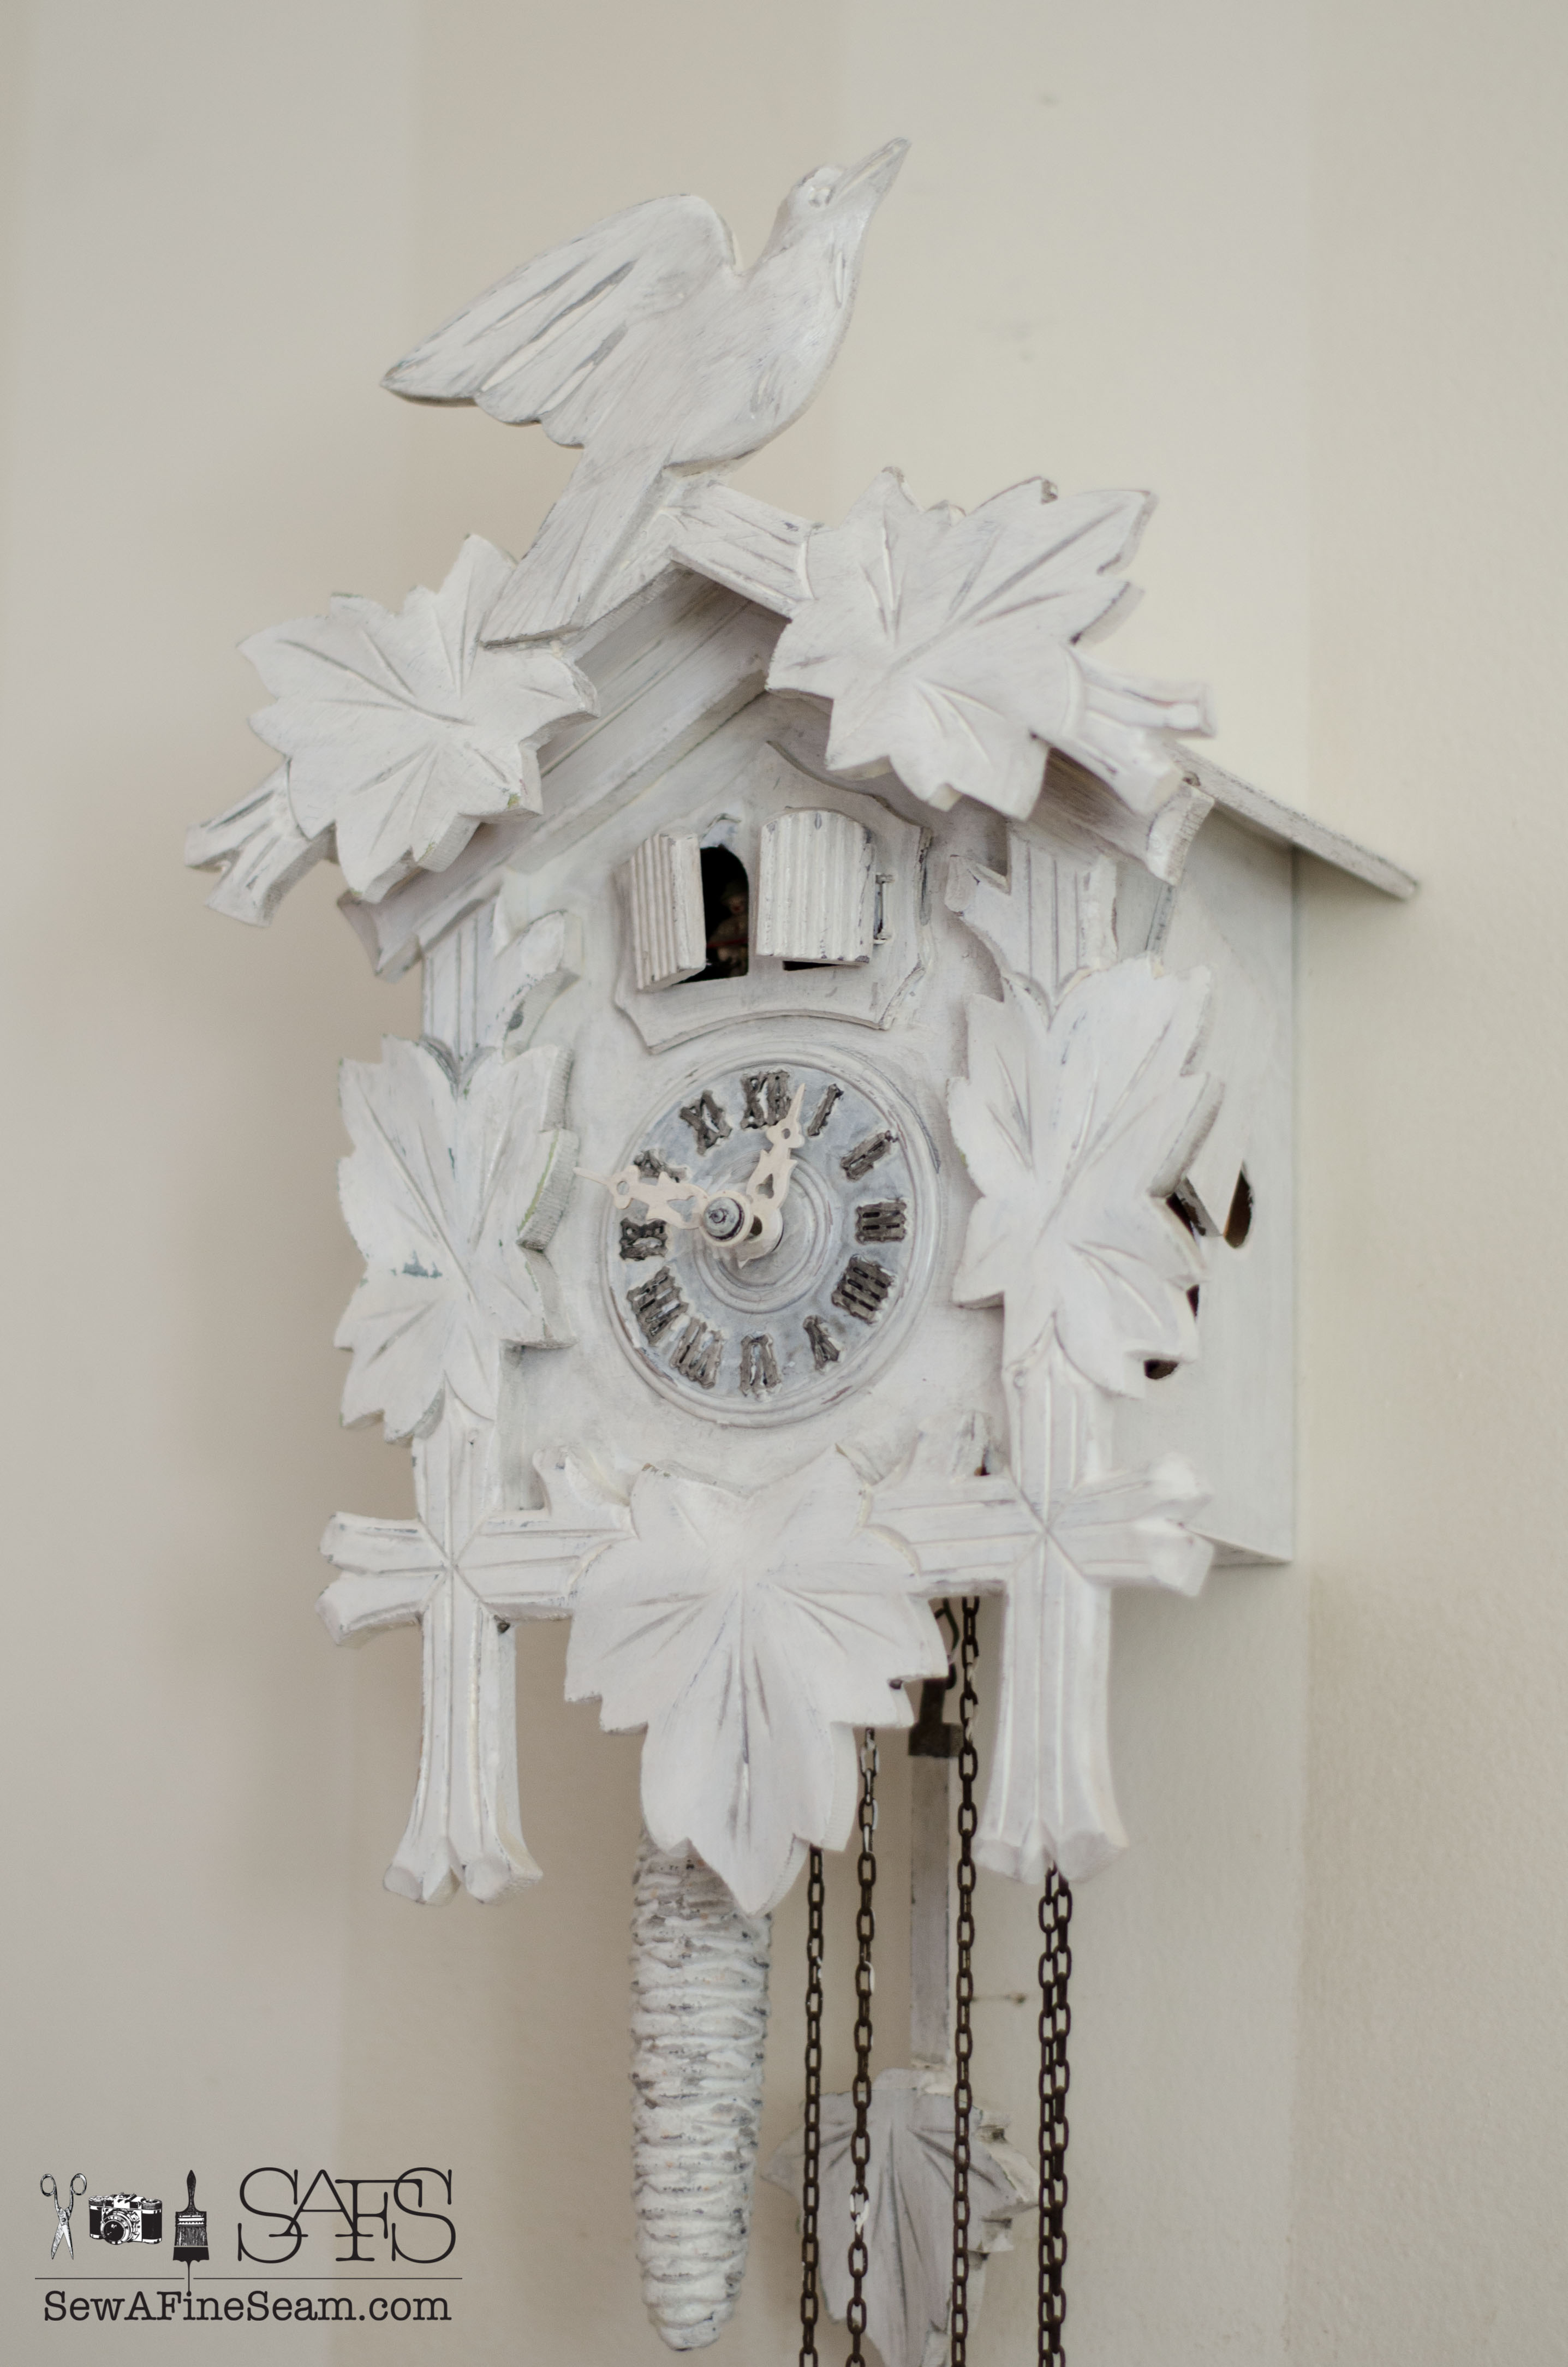 Cuckoo Clock Painted White And Hung On A Striped Wall